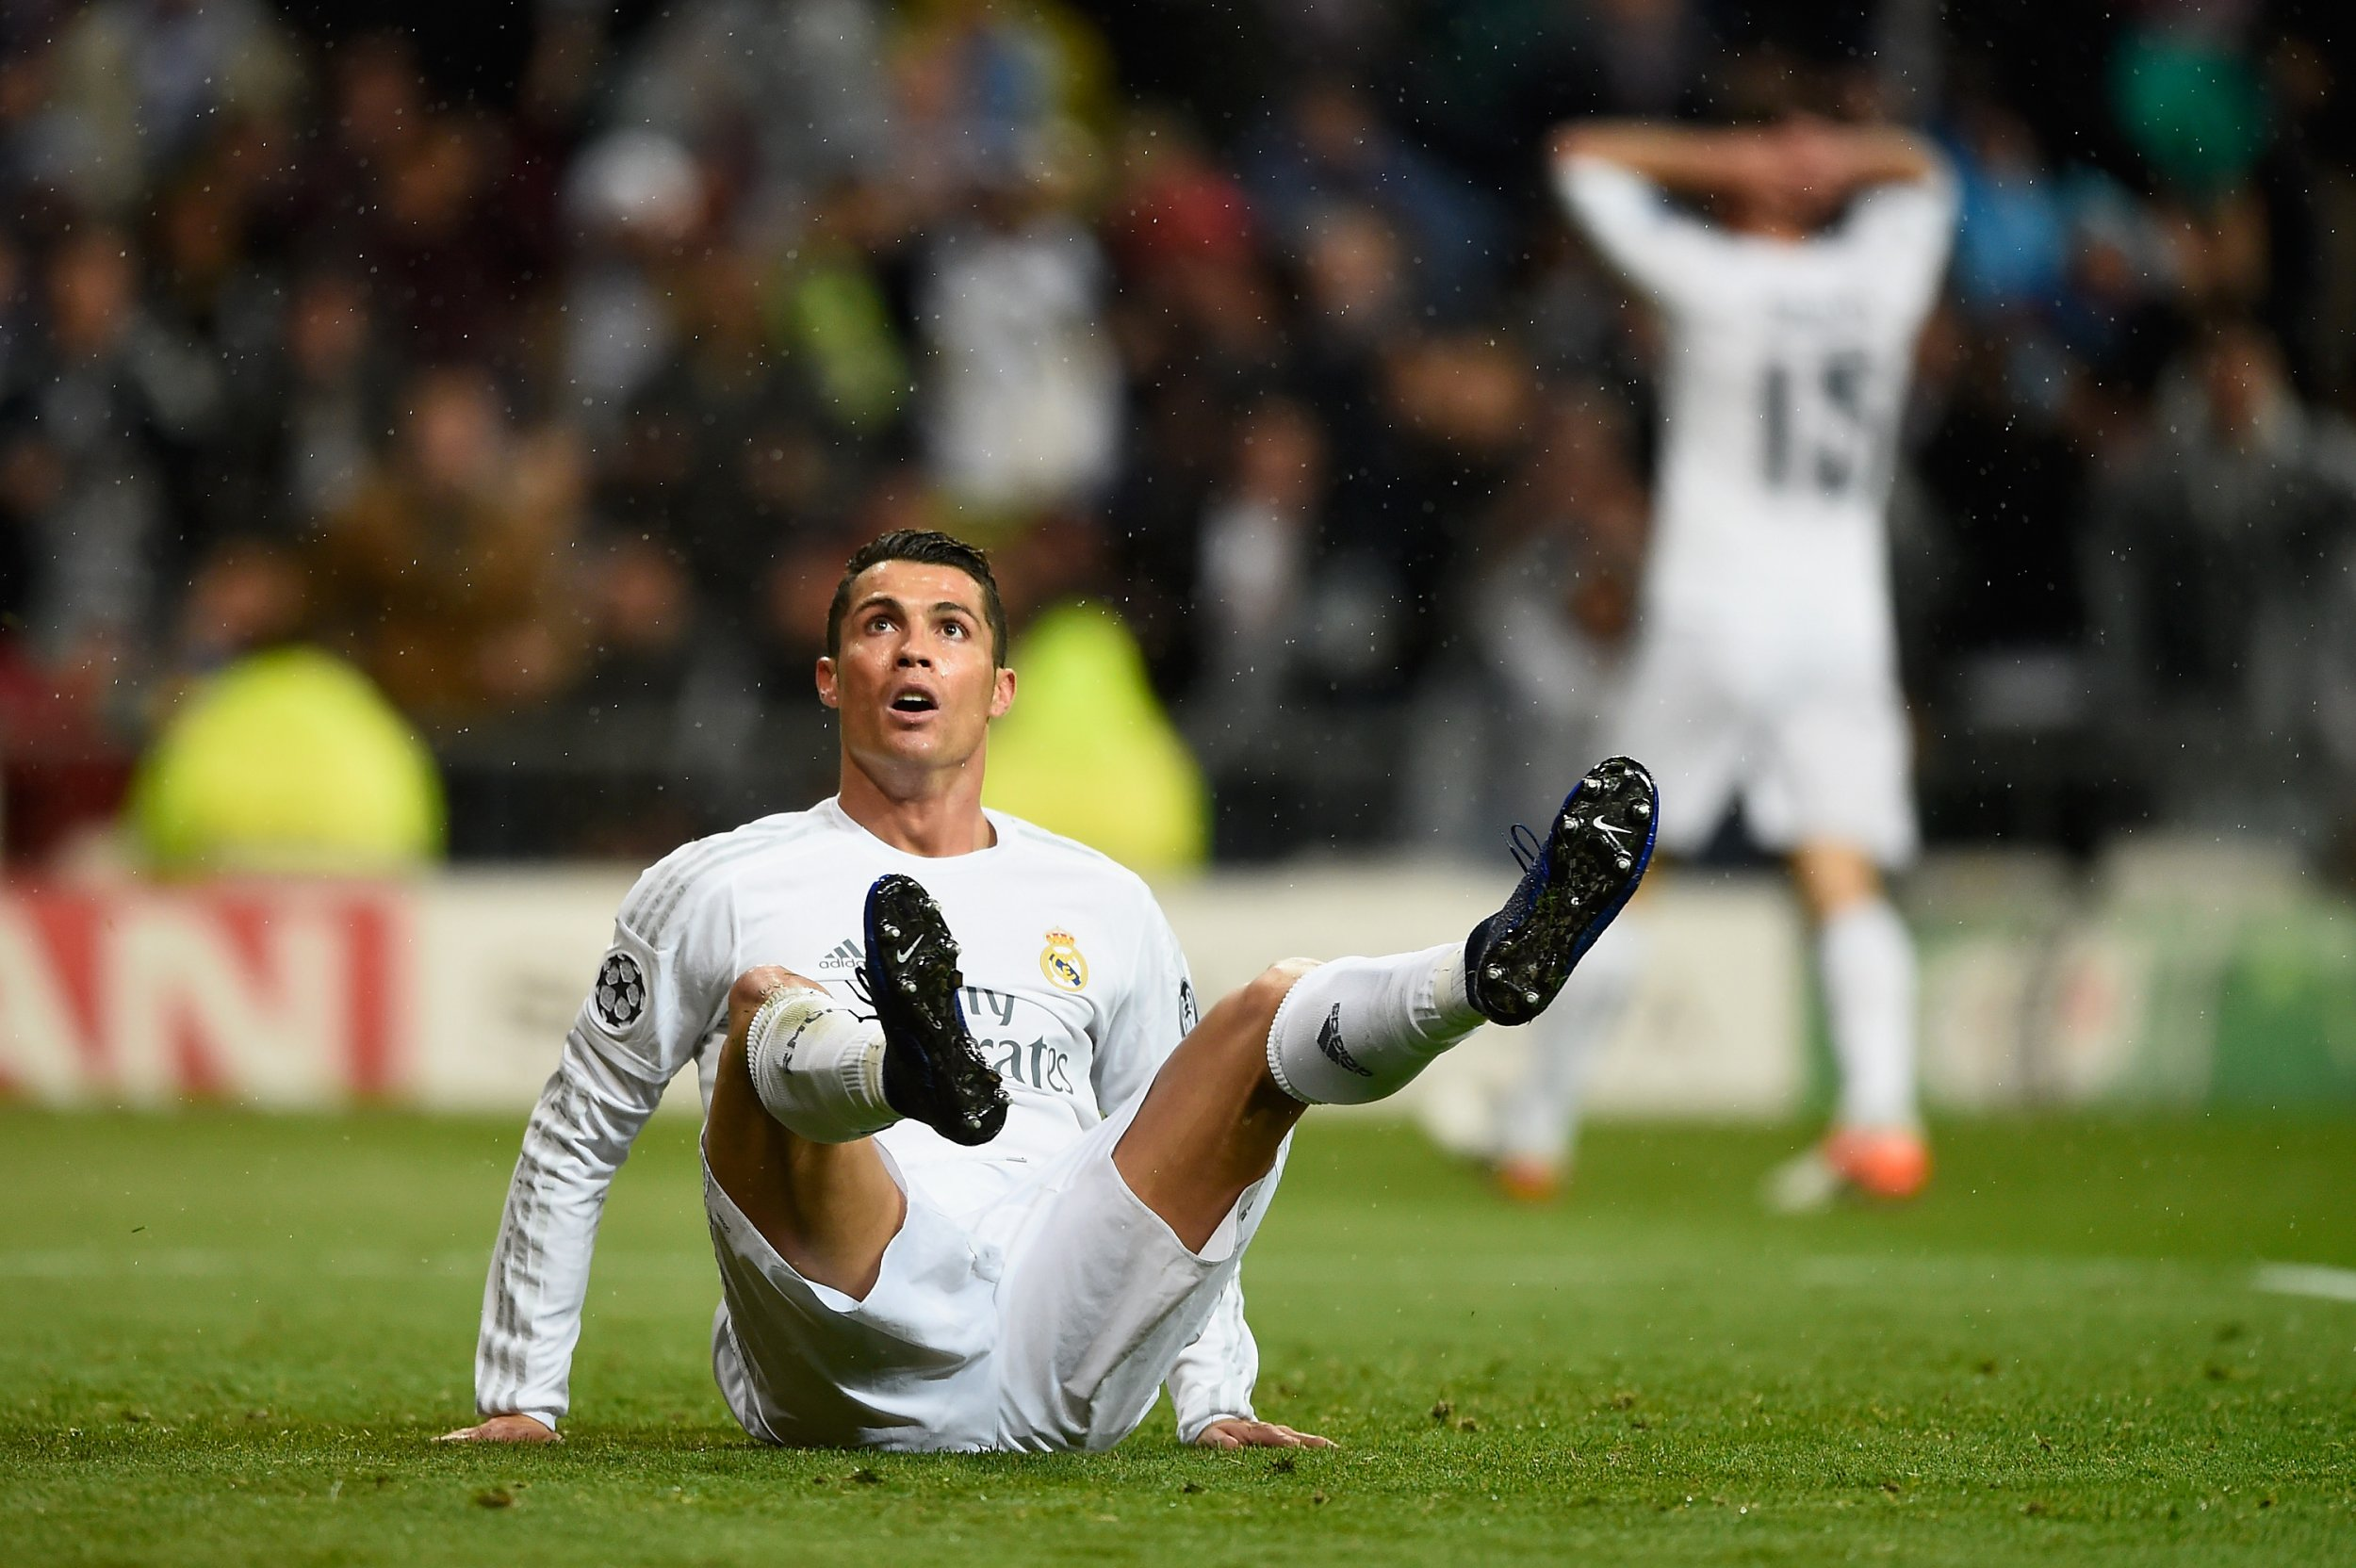 Real Madrid's Cristiano Ronaldo will be a key factor against Manchester City.